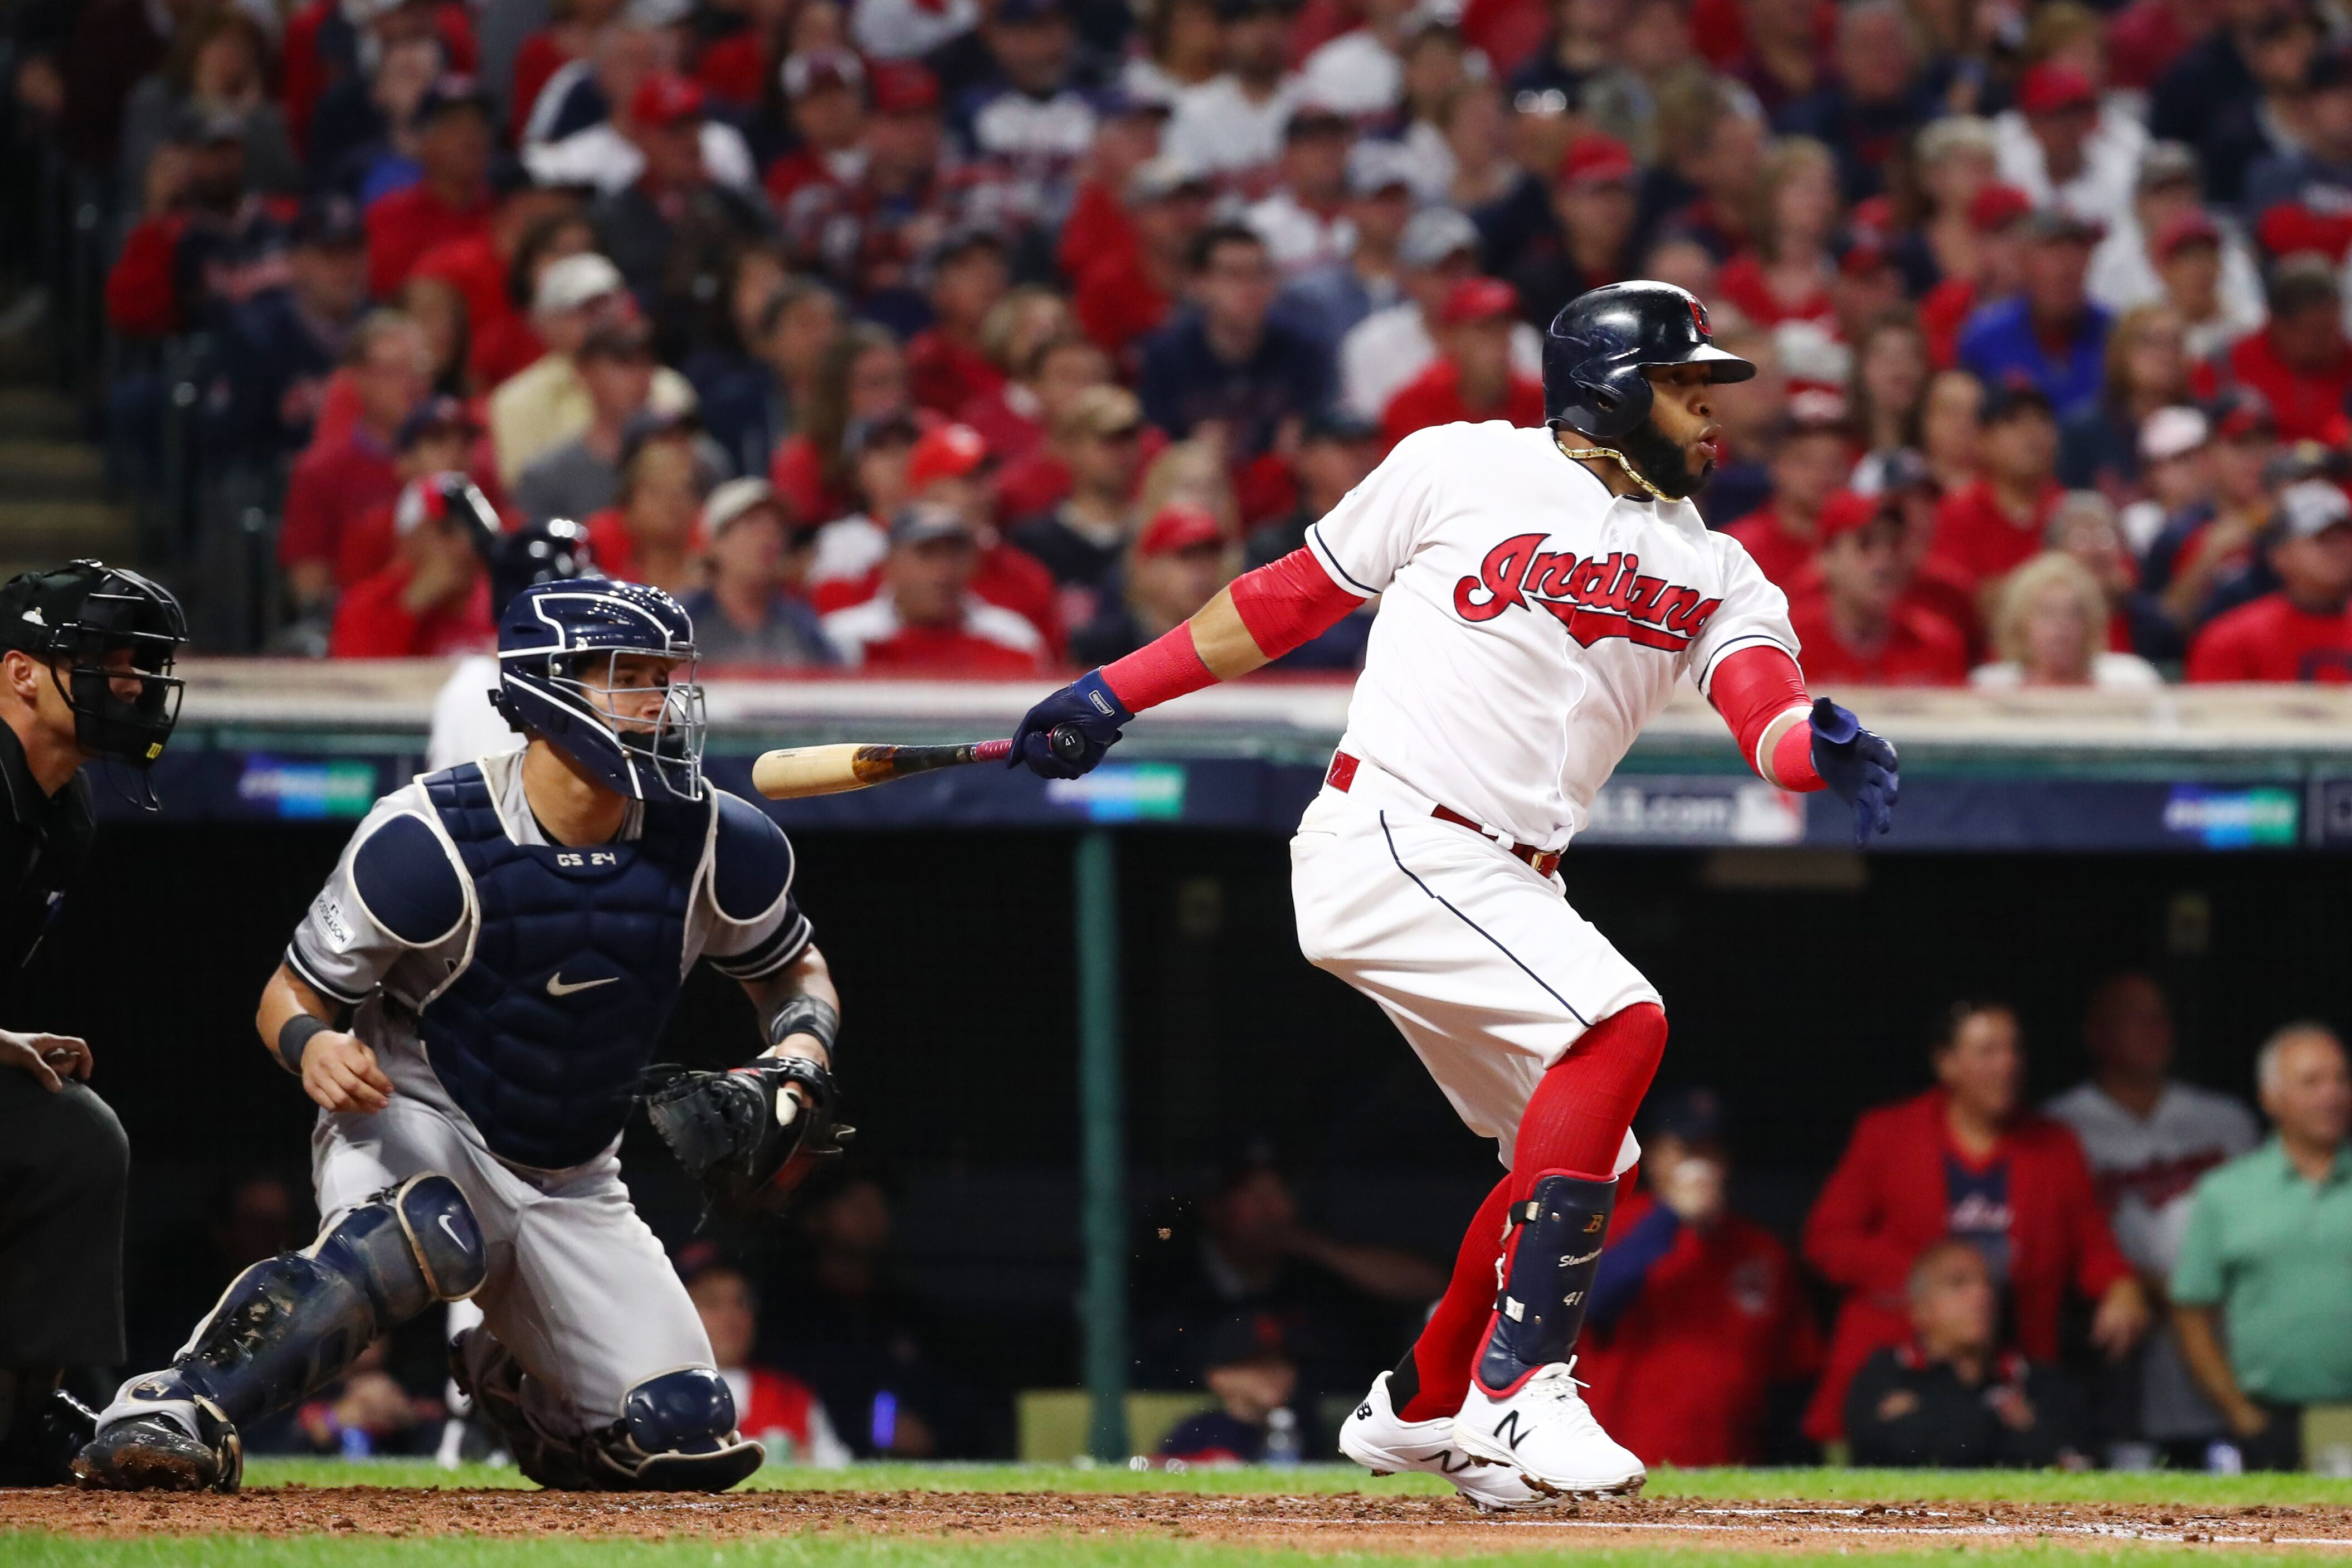 858050848-divisional-round-new-york-yankees-v-cleveland-indians-game-one.jpg